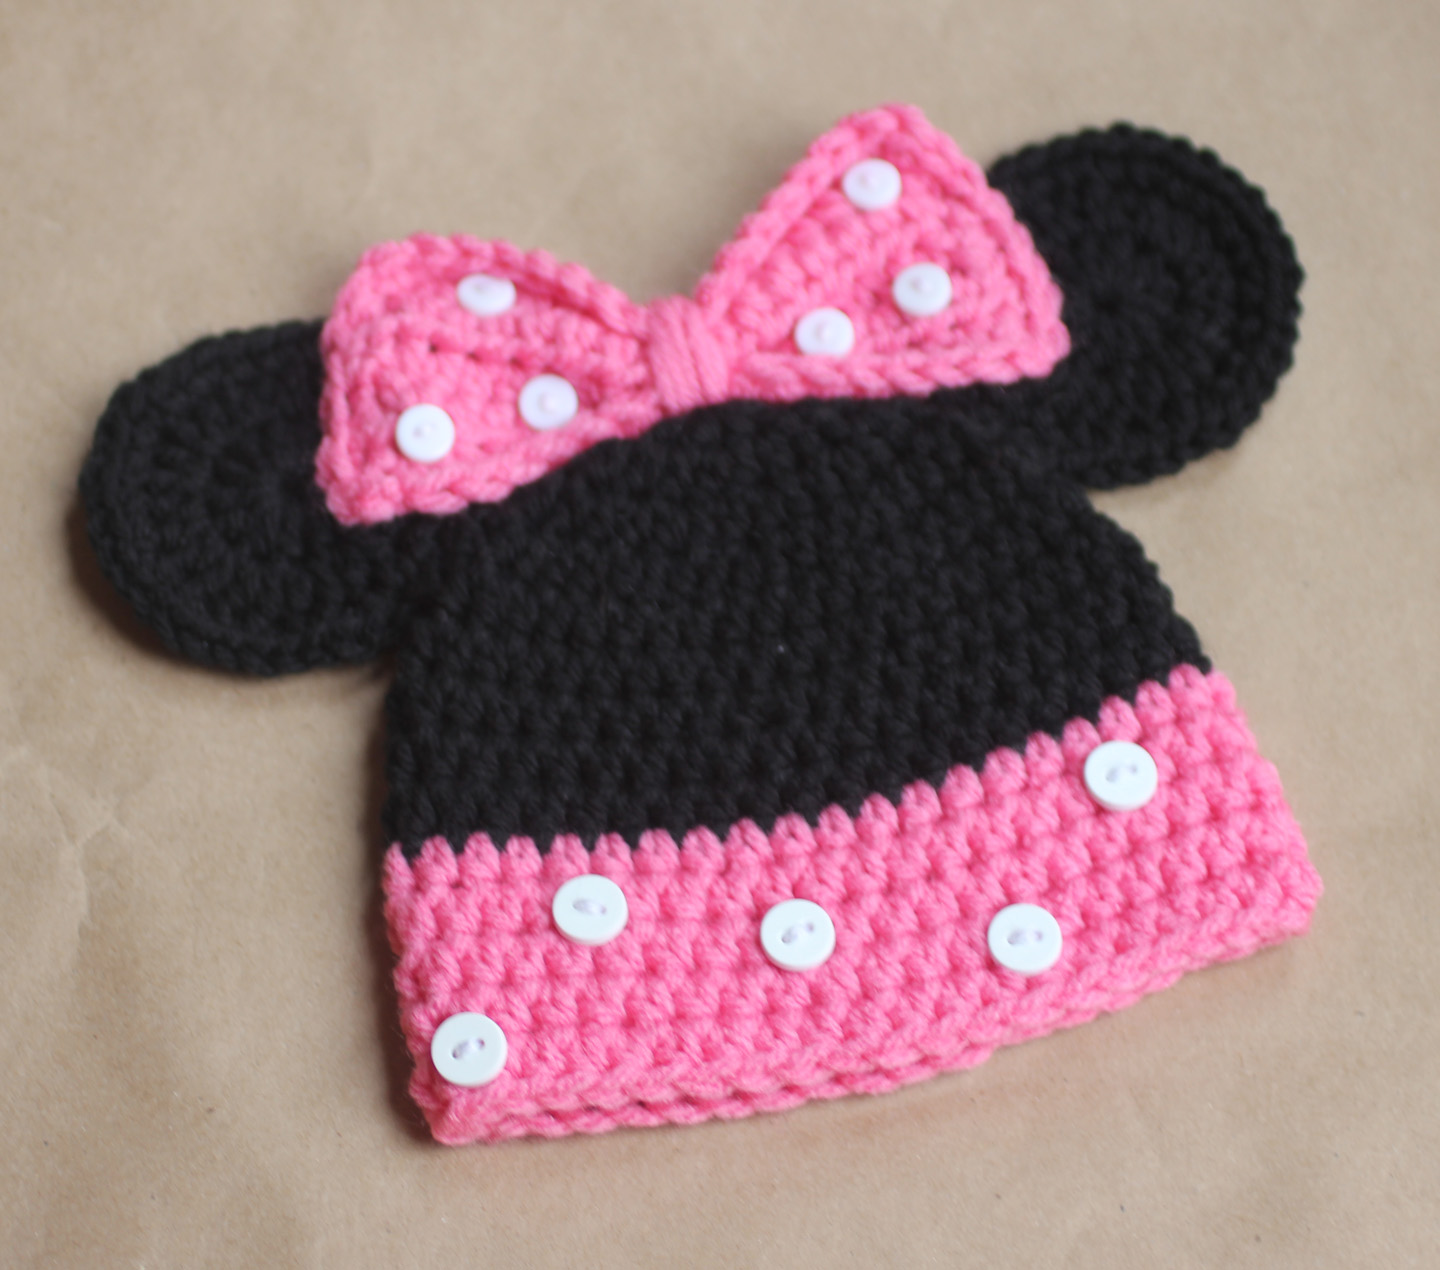 Crochet Patterns For Minnie Mouse : Gallery For > Crochet Minnie Mouse Hat